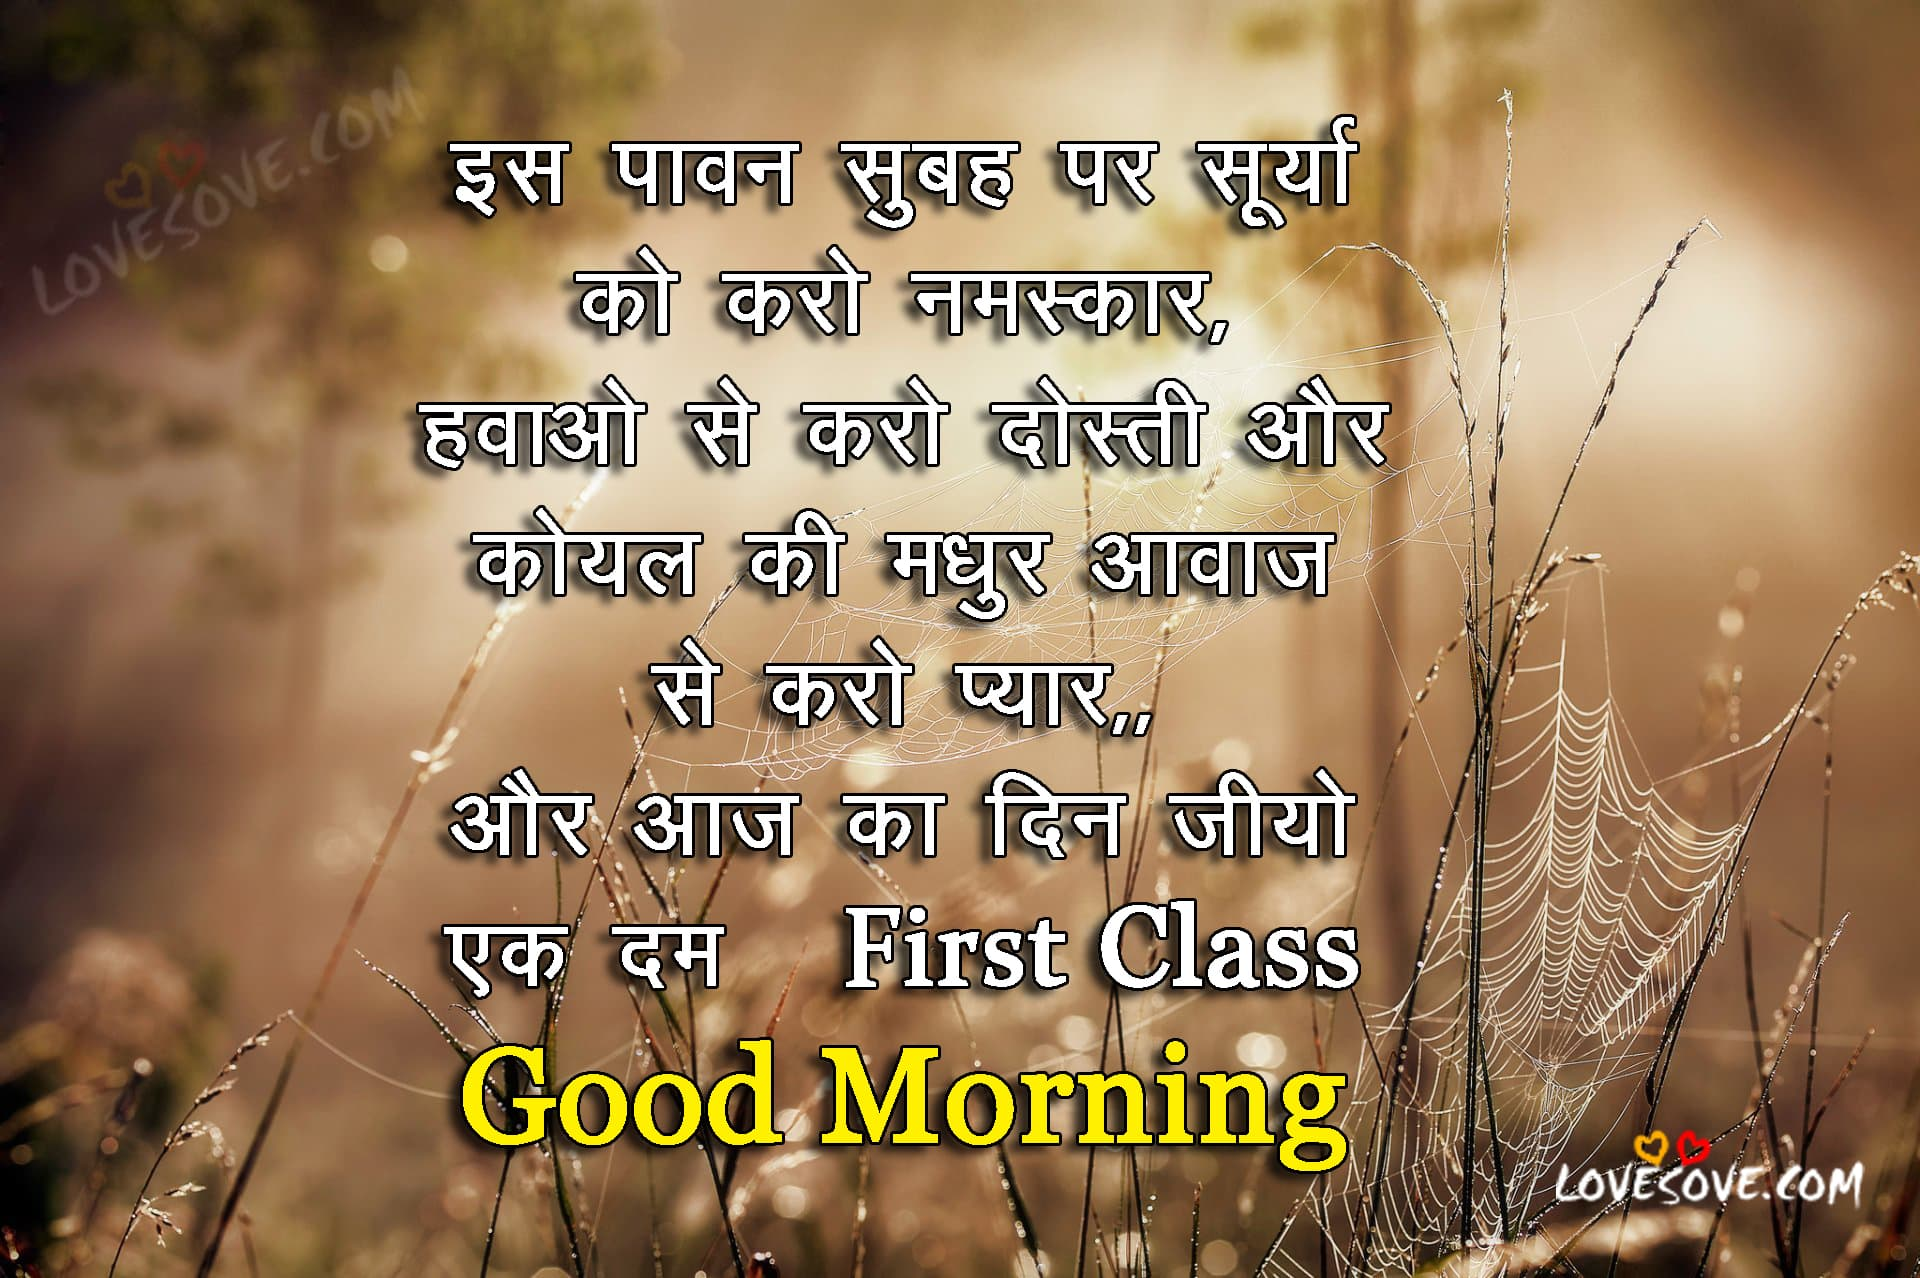 Lovesove Good Morning Wallpaper : Is Pavan Subah Par - HIndi Good Morning Wishes, Images ...